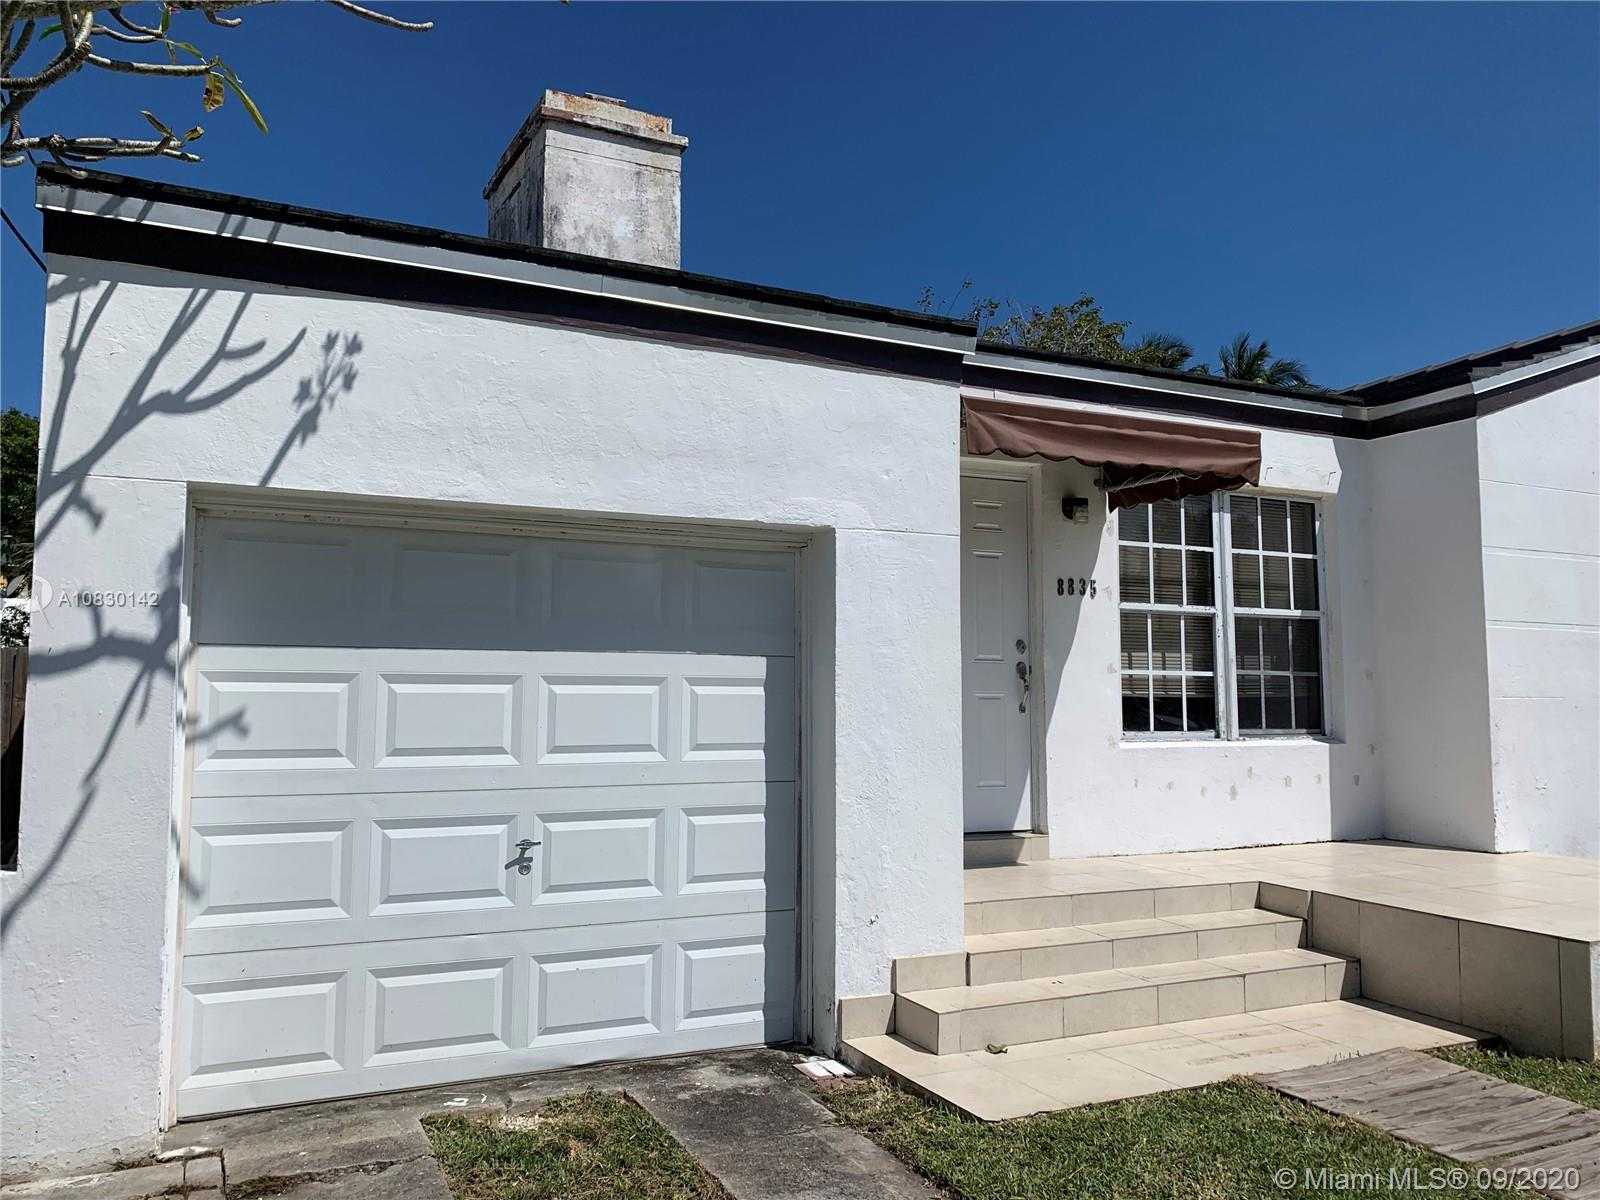 THIS IS A GREAT BEGINNER, FIXER UPPER TO GET INTO SURFSIDE.  GOOD LOCATION... HOUSE HAS BEEN RENOVAT